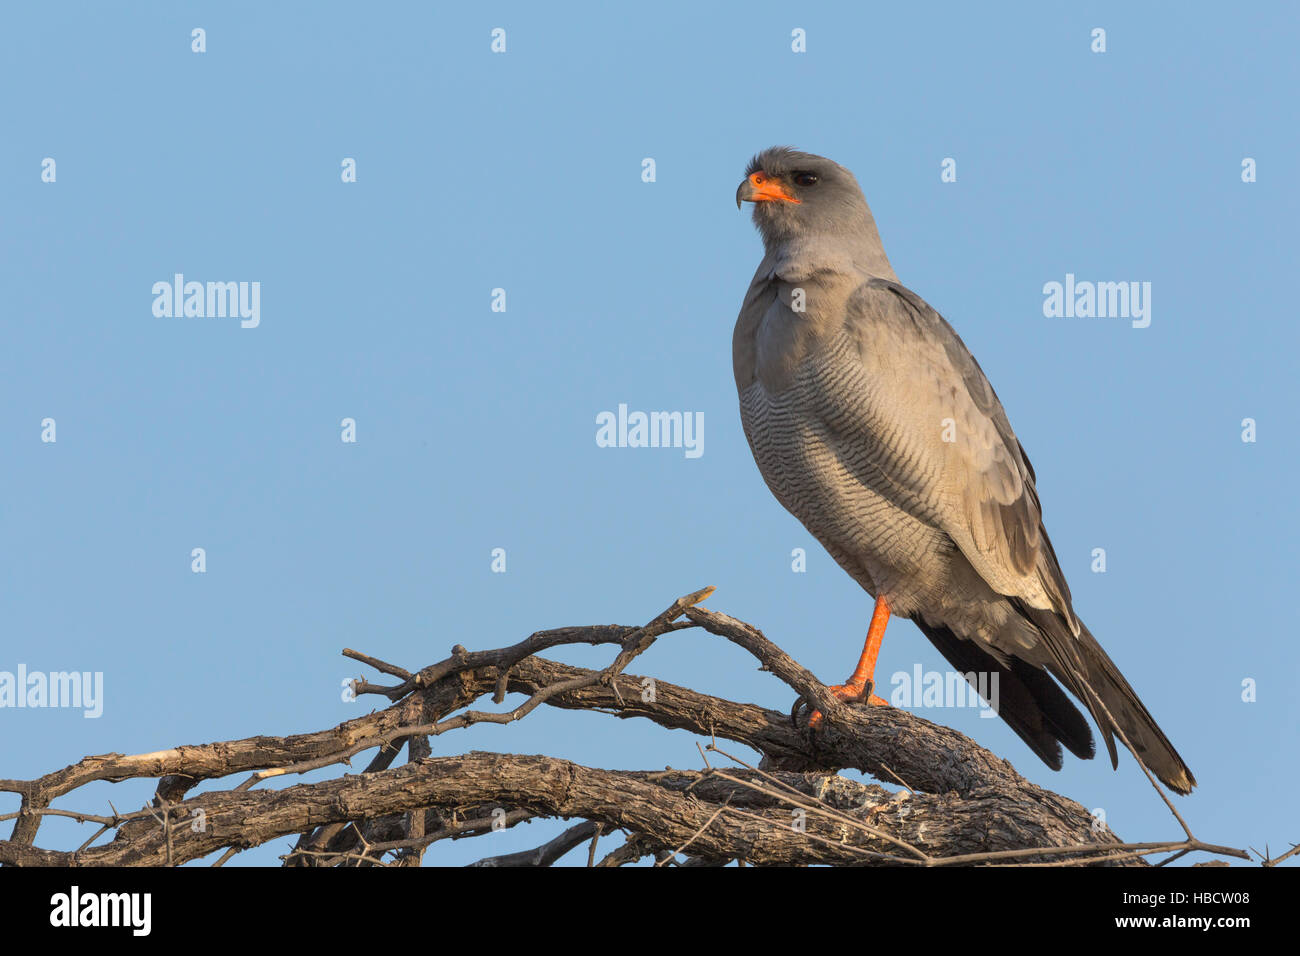 Pale chanting goshawk (Melierax canorus), Kgalagadi Transfrontier Park, South Africa - Stock Image